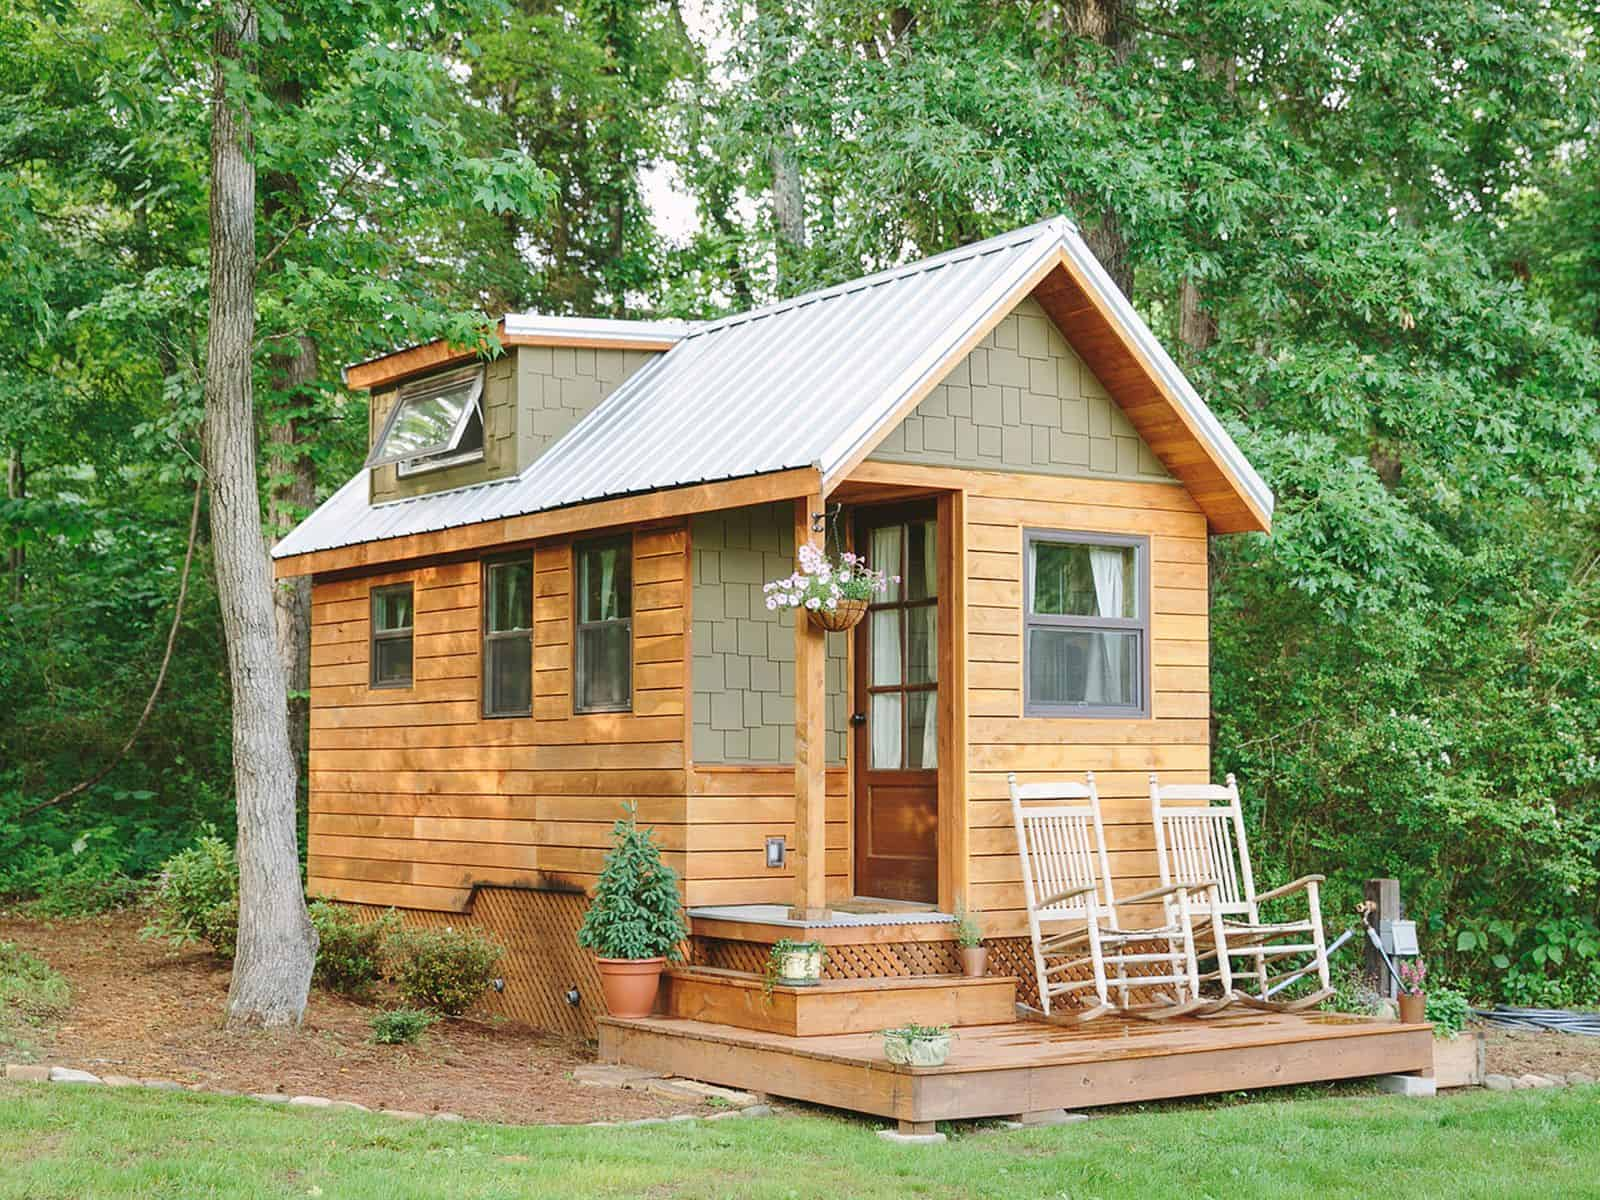 Extremely tiny homes minimalistic living in style Cottage style tiny homes